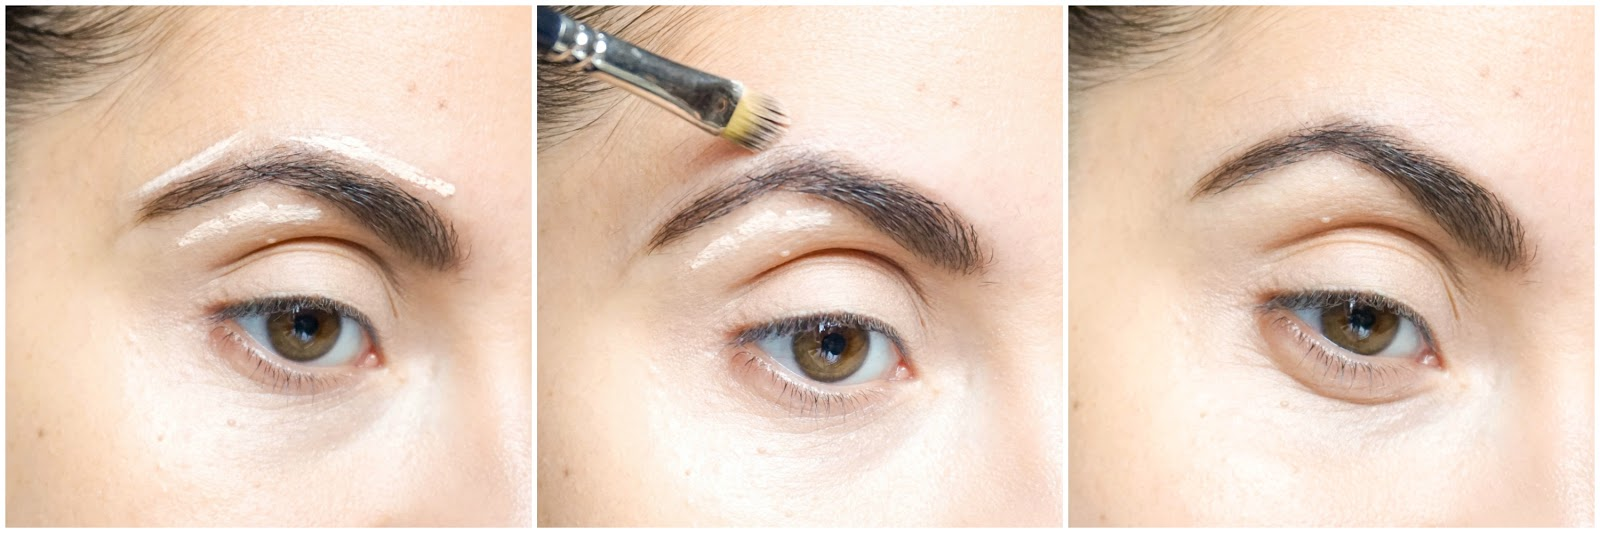 Naturally Defined Brows with Benefit - Step By Step